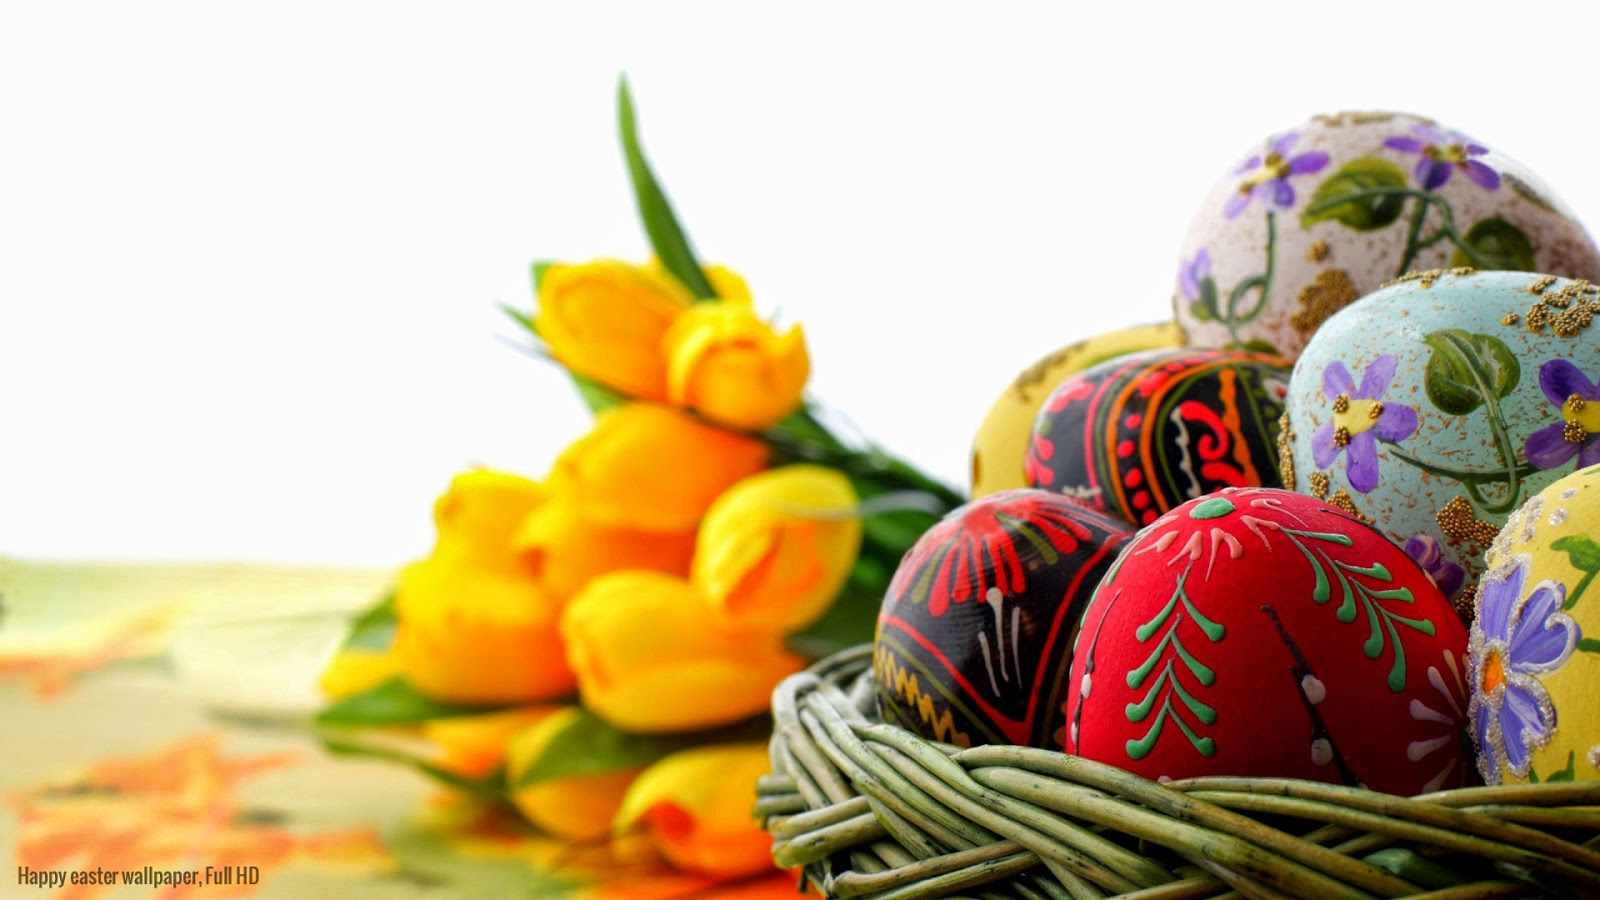 Easter sunday quotes wishes images messages prayer 2016 orthodox easter sunday quotes wishes images messages prayer 2016 kristyandbryce Choice Image